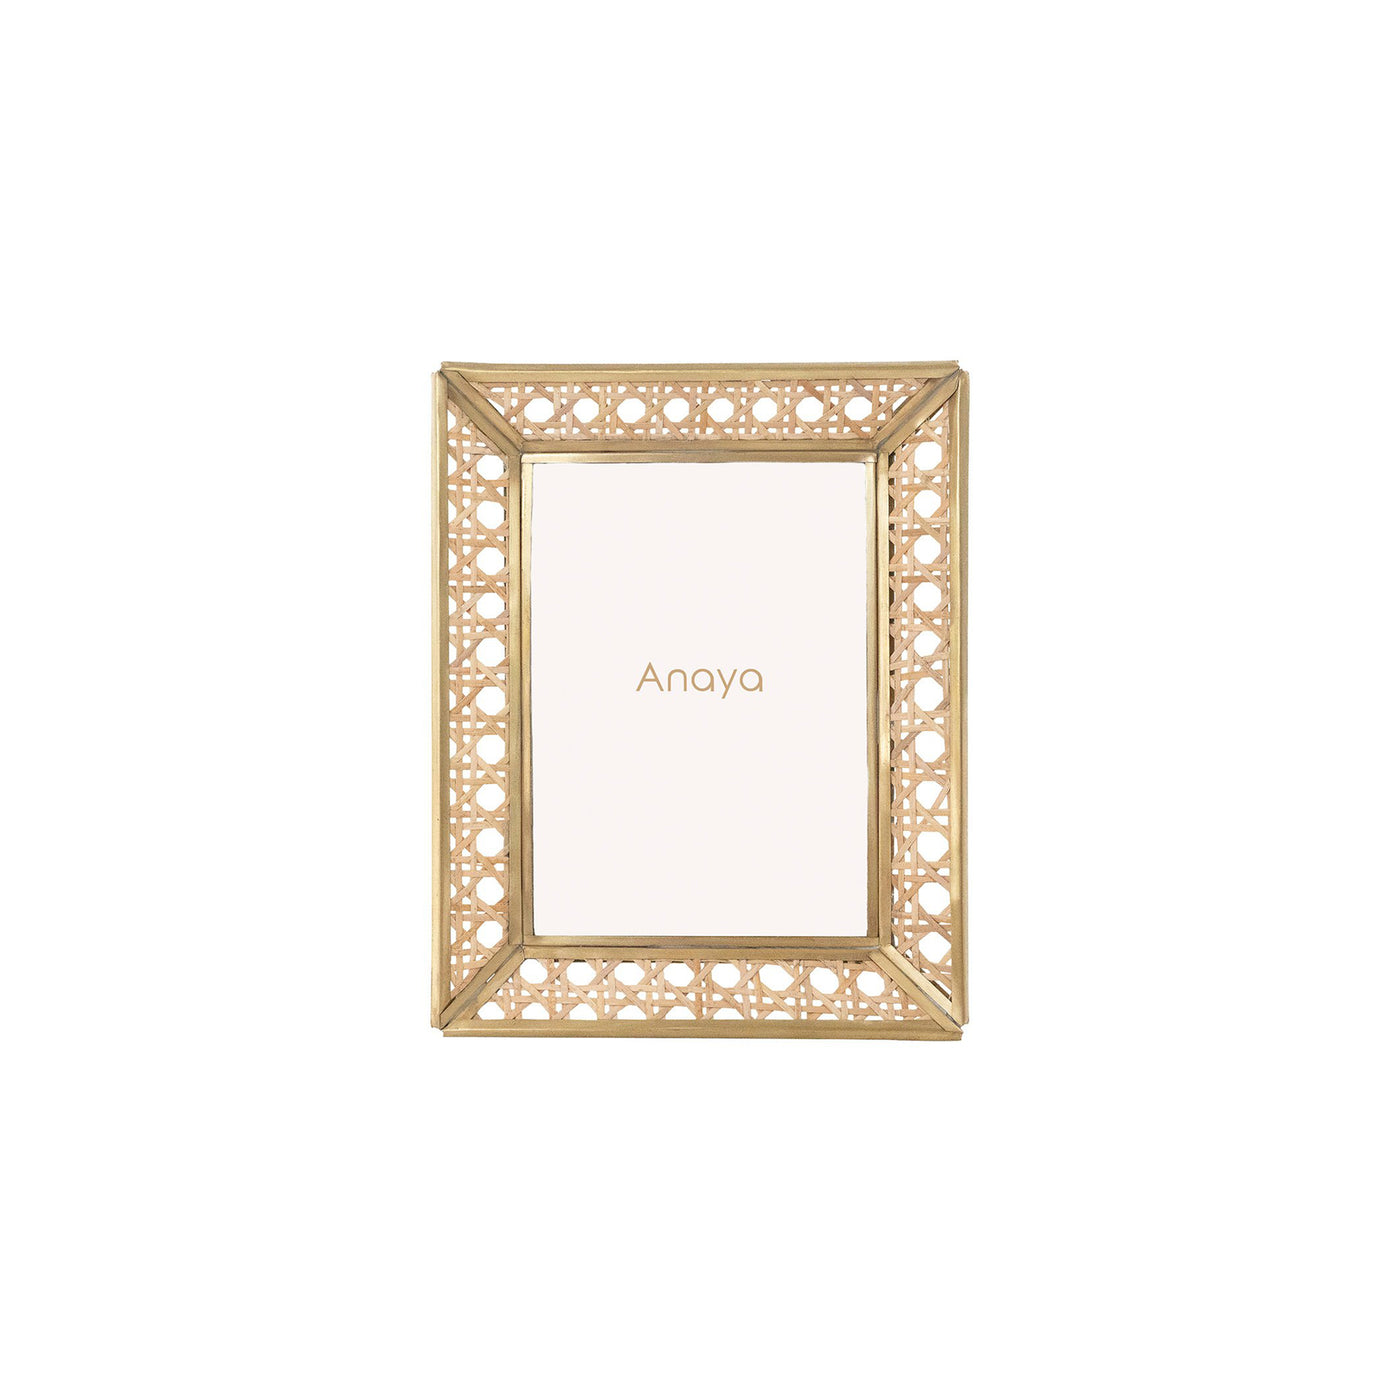 Natural Cane Wicker Picture Frame - 4x6